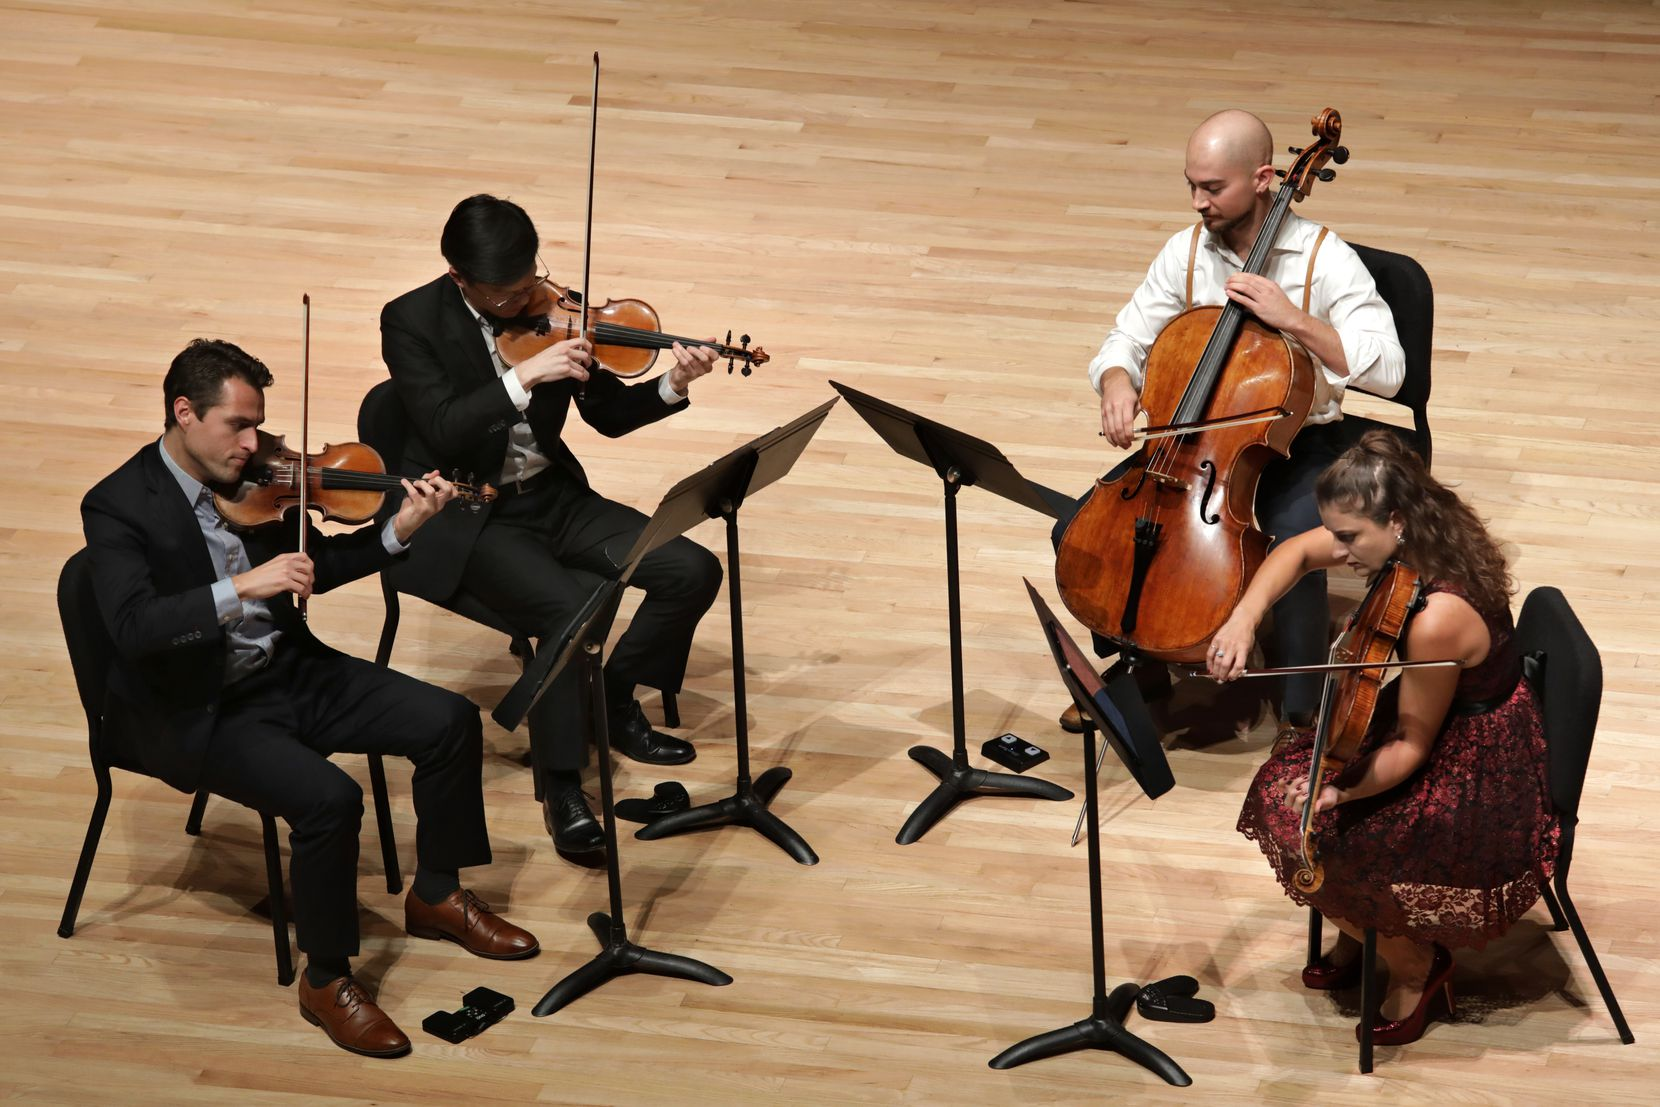 The Dover Quartet performs at Southern Methodist University's Caruth Auditorium on Oct. 21, 2019.